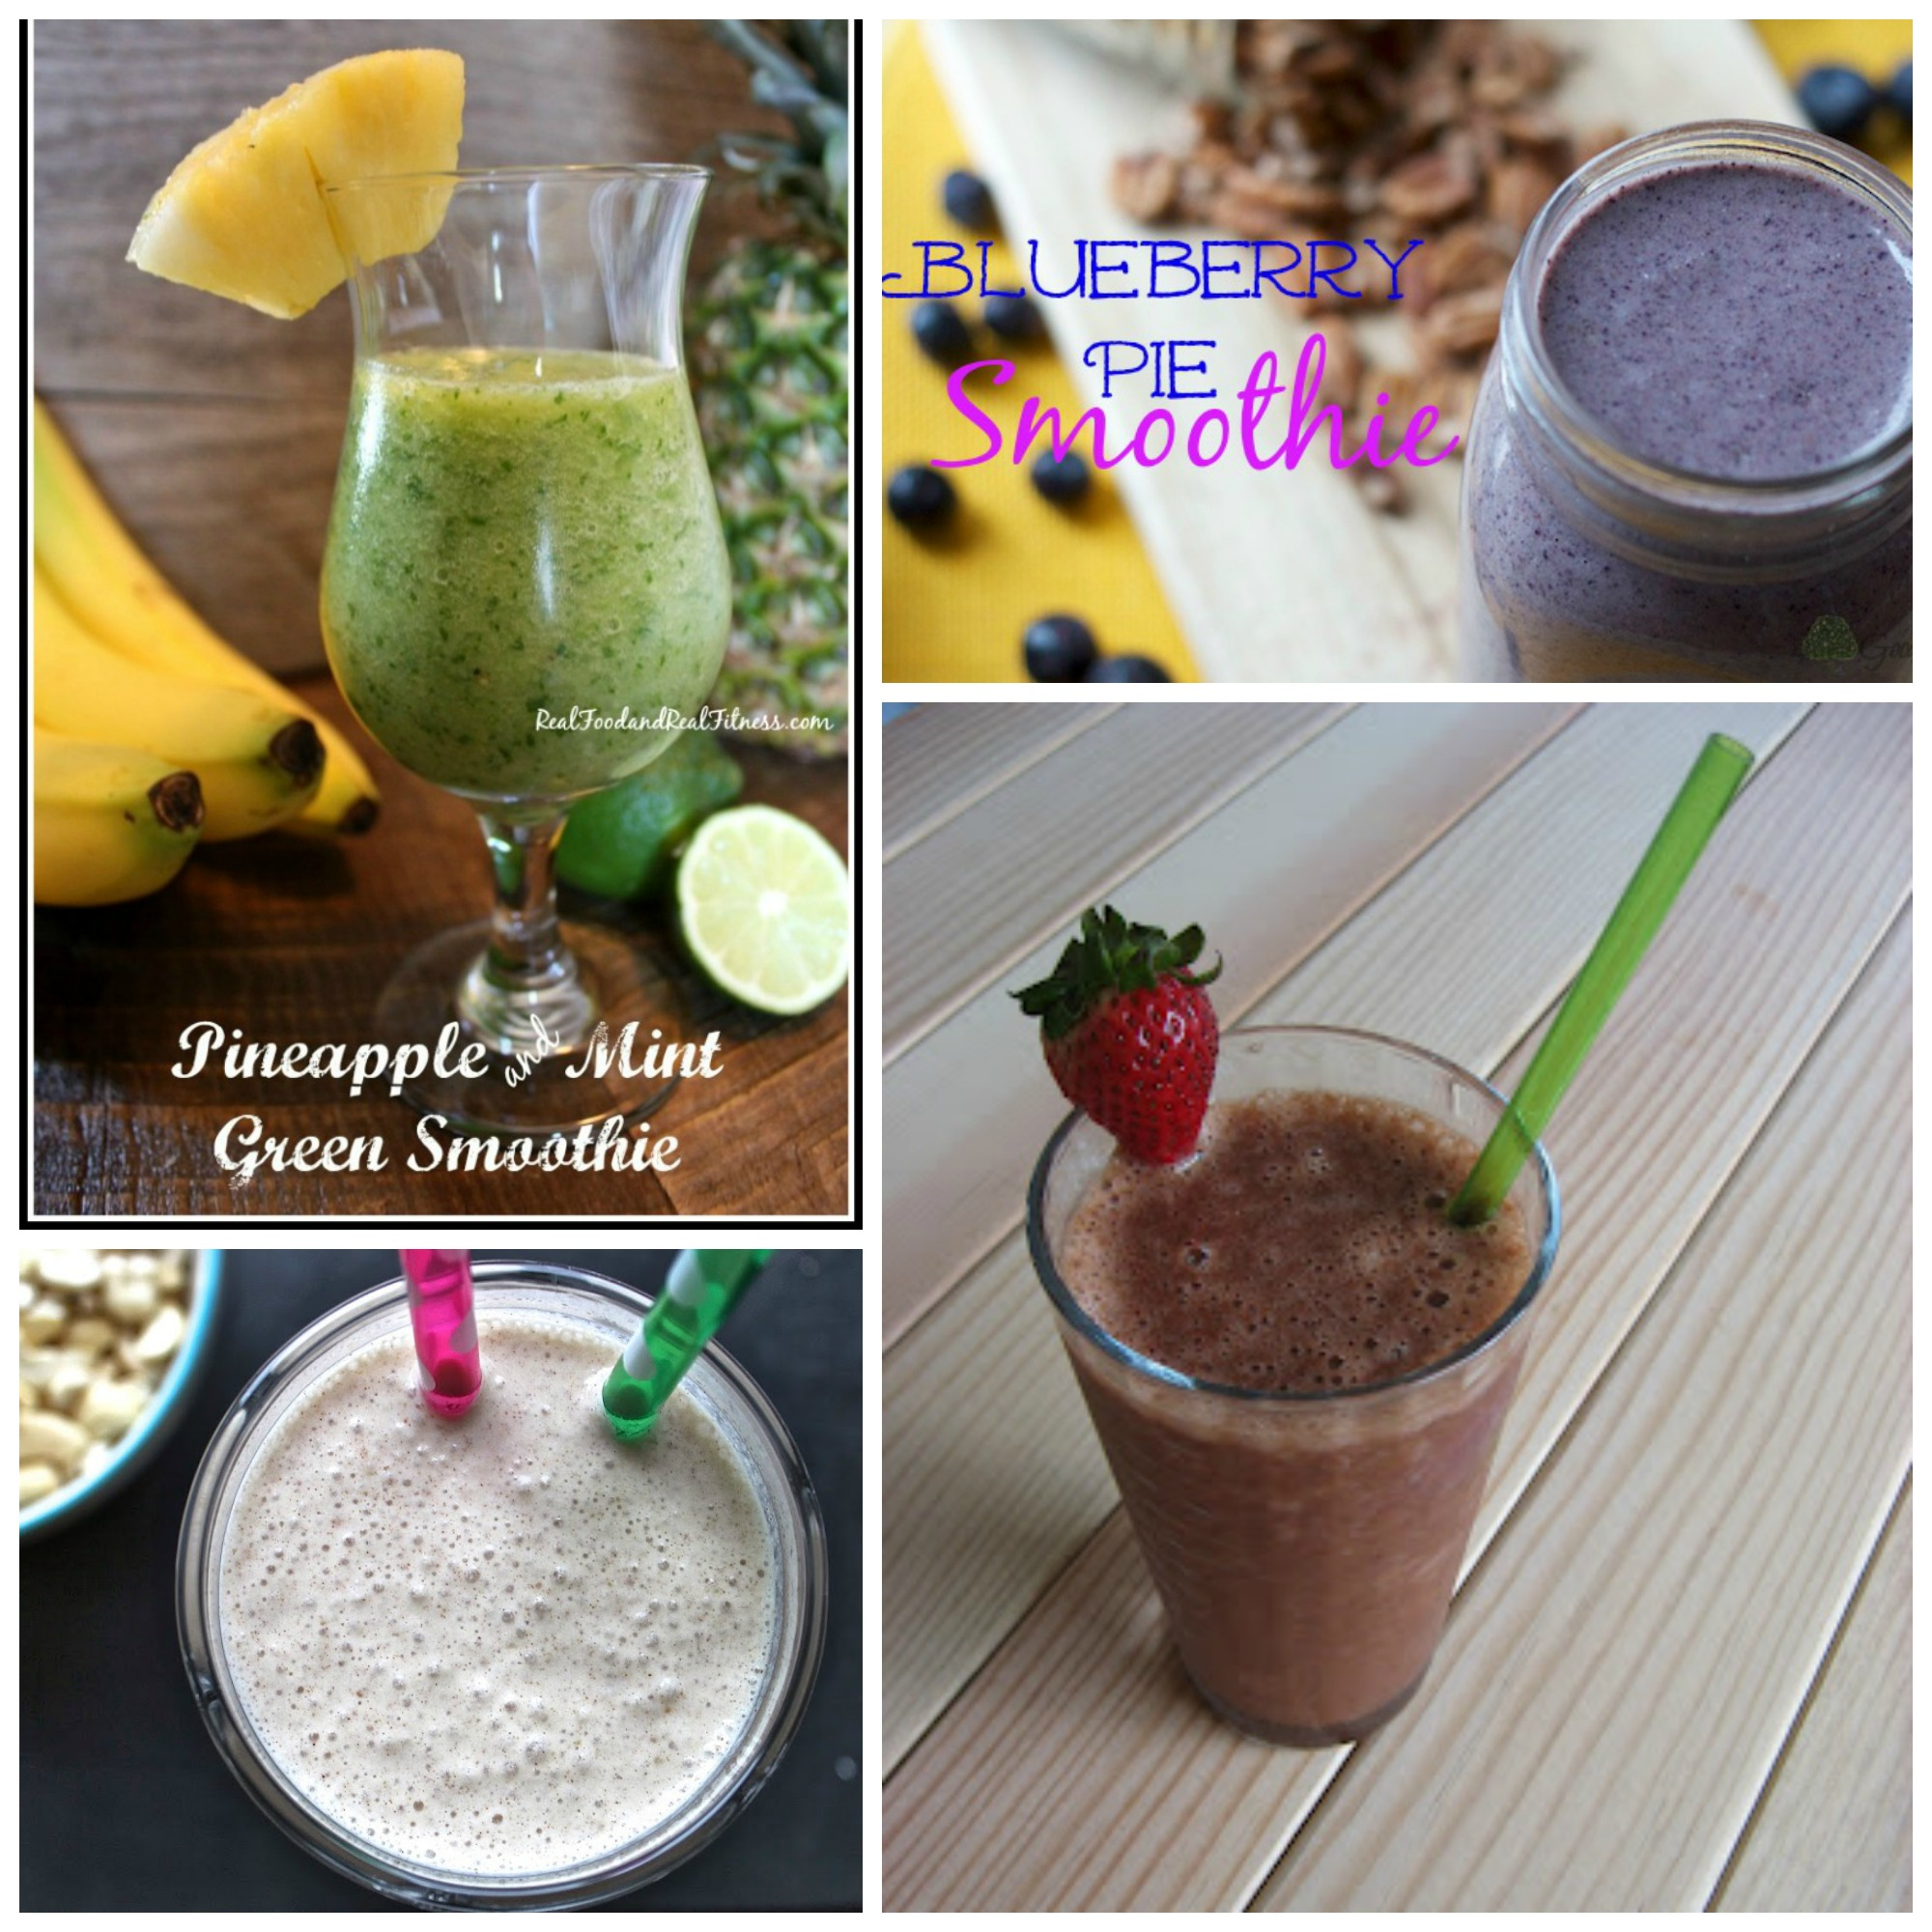 37 Smoothies, Slushies, and Shakes To Make and Share: NaturalParentsNetwork.com